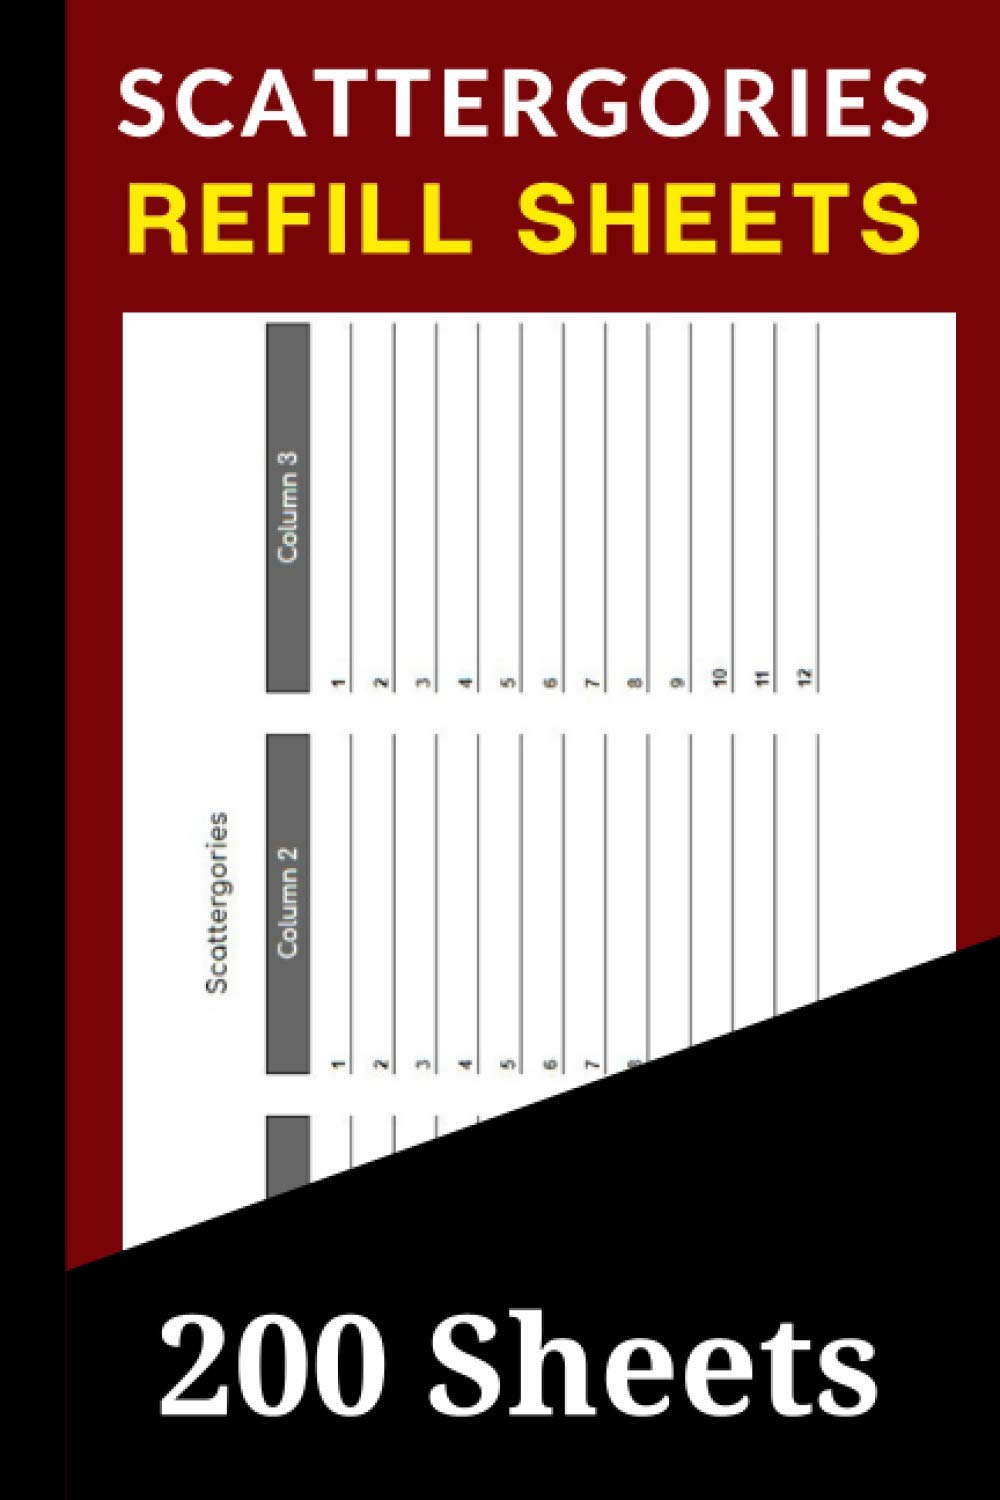 Amazon Com Scattergories Refill Sheets 200 Scattergories Board Game Refills Pad Extra Answer Pad Refills For Scattergories 9798557391740 Smith Colleen Books